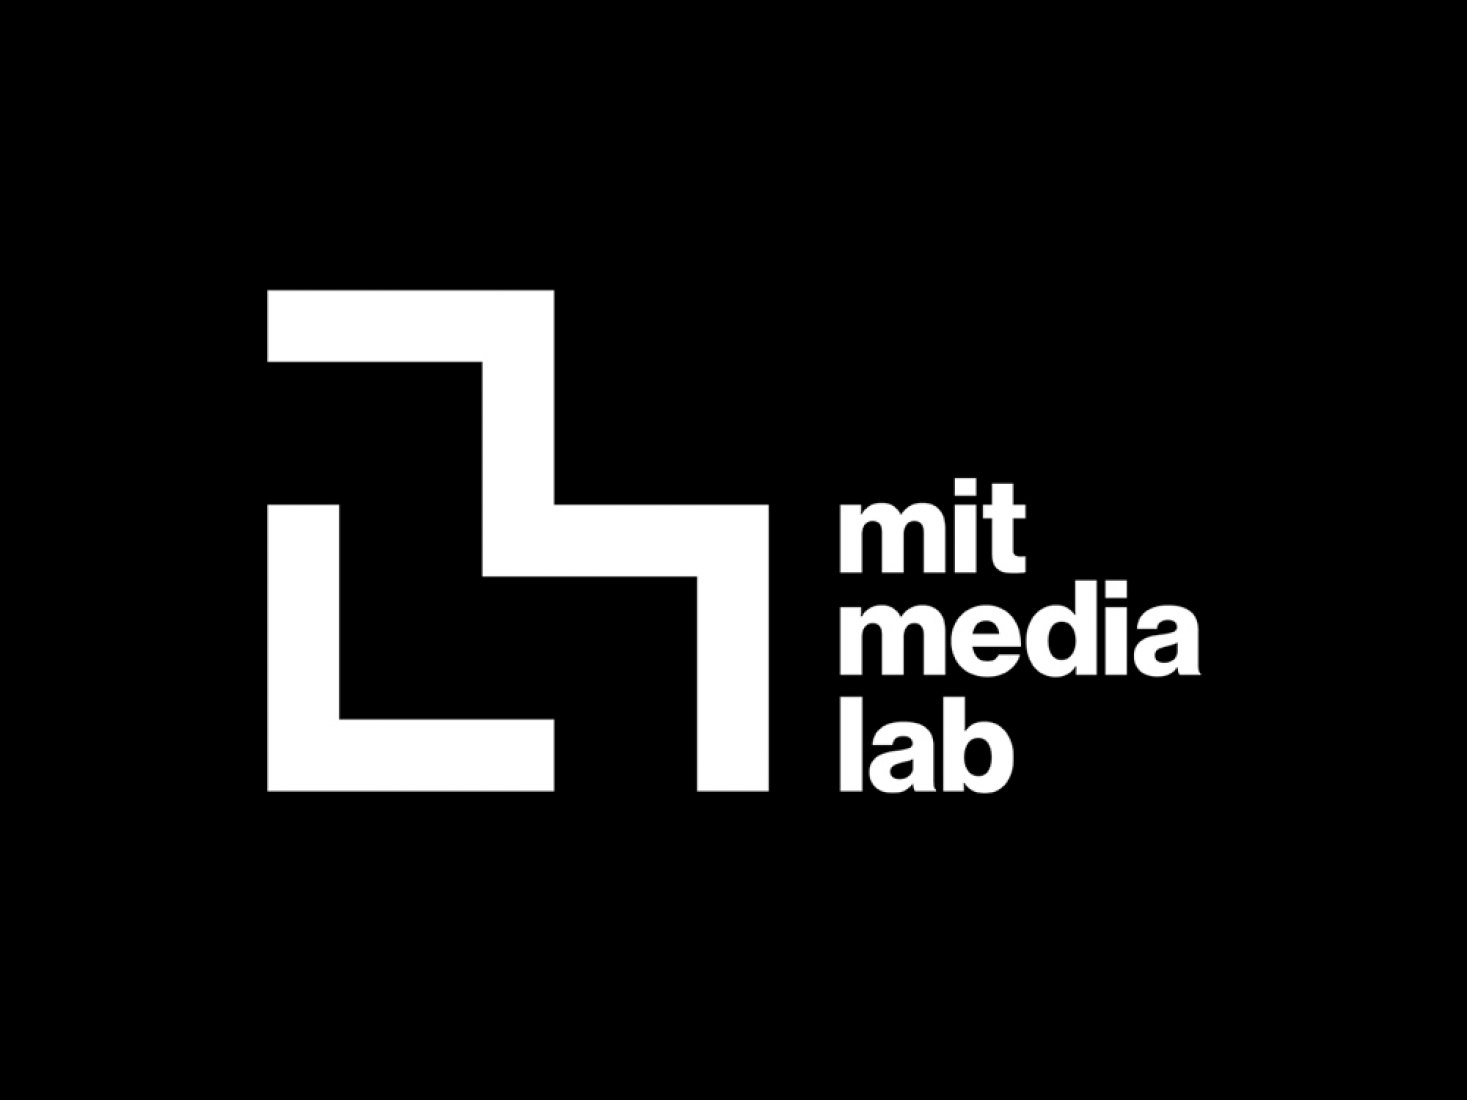 Pentagram Transforms MIT Media Lab's Logo | The Strength of ...